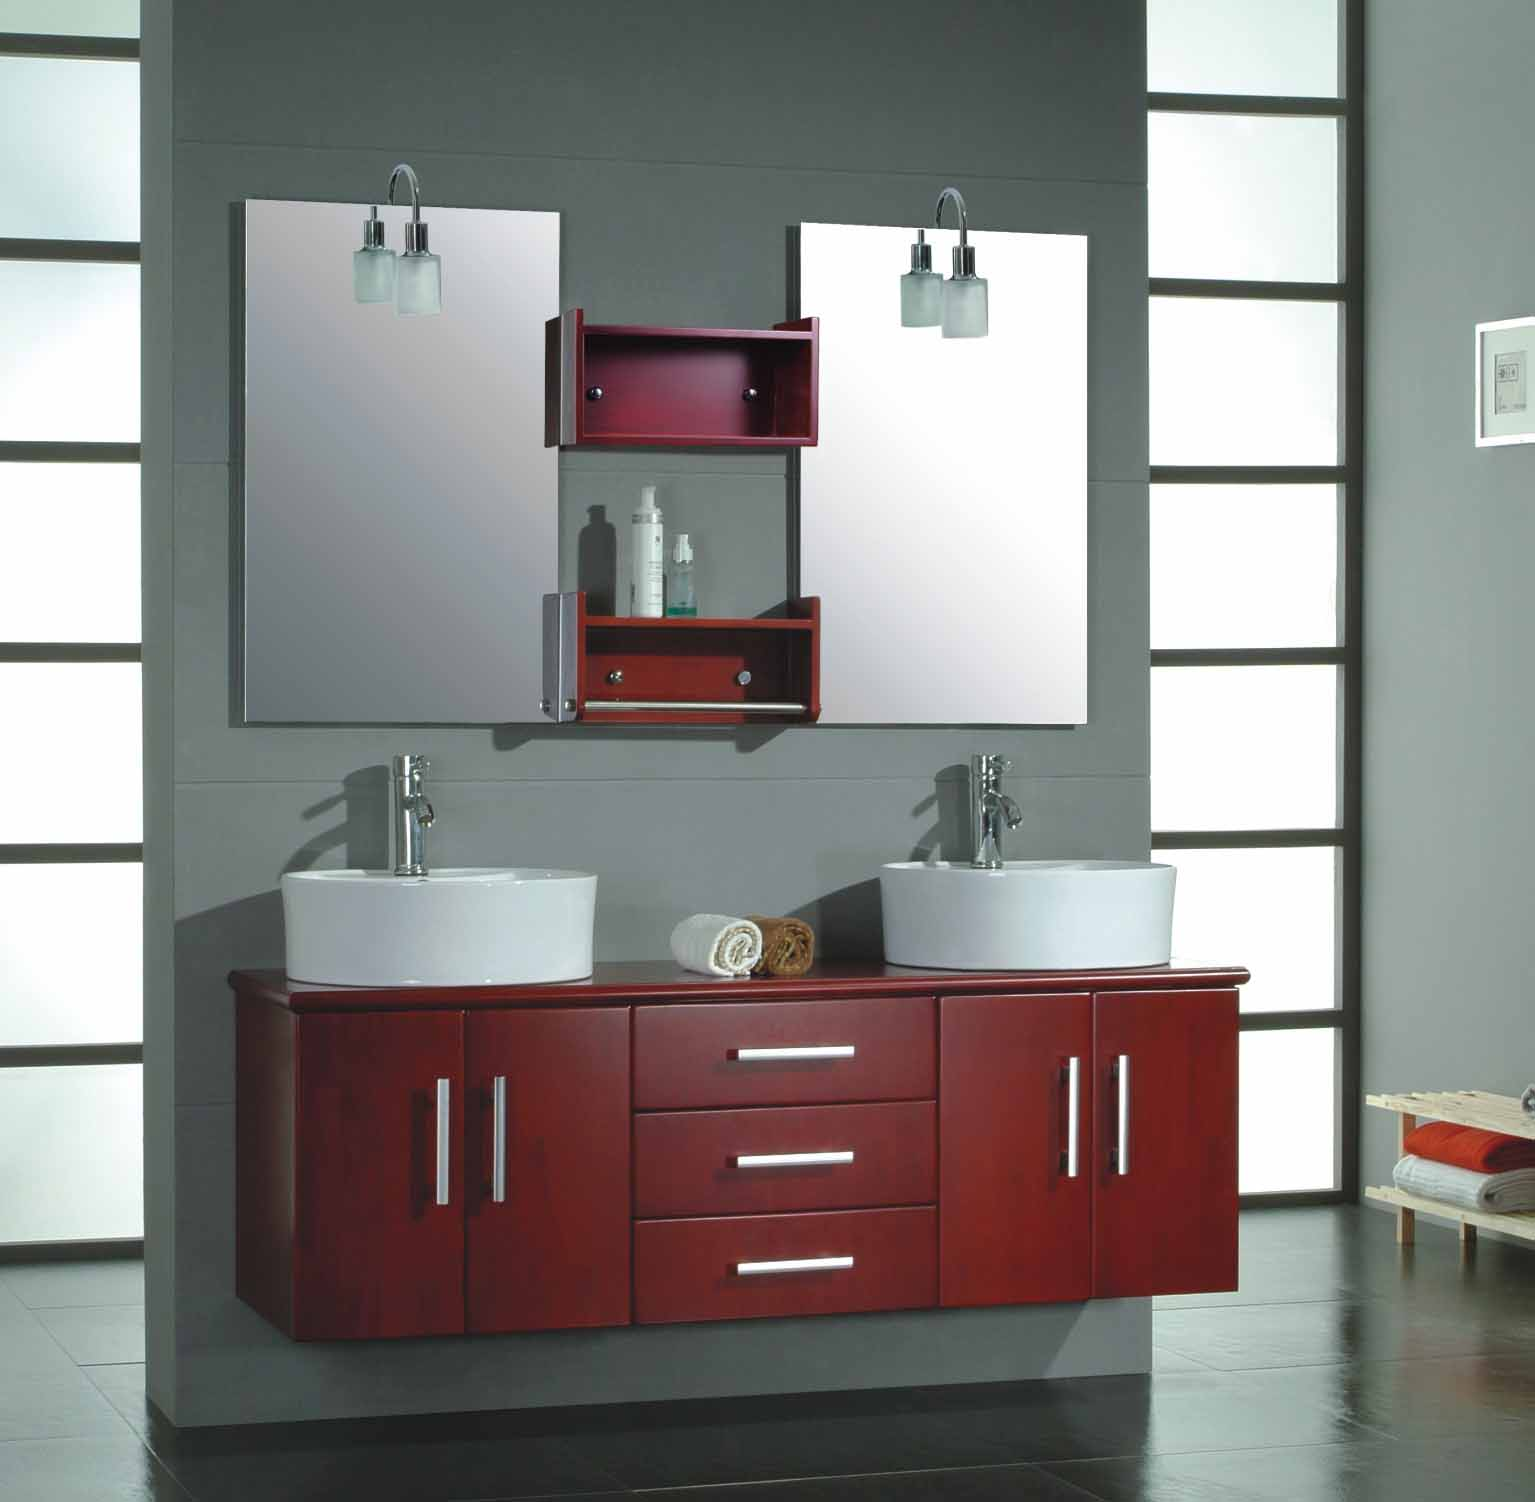 Interior design ideas bathroom furniture choosing for Bathroom furniture ideas